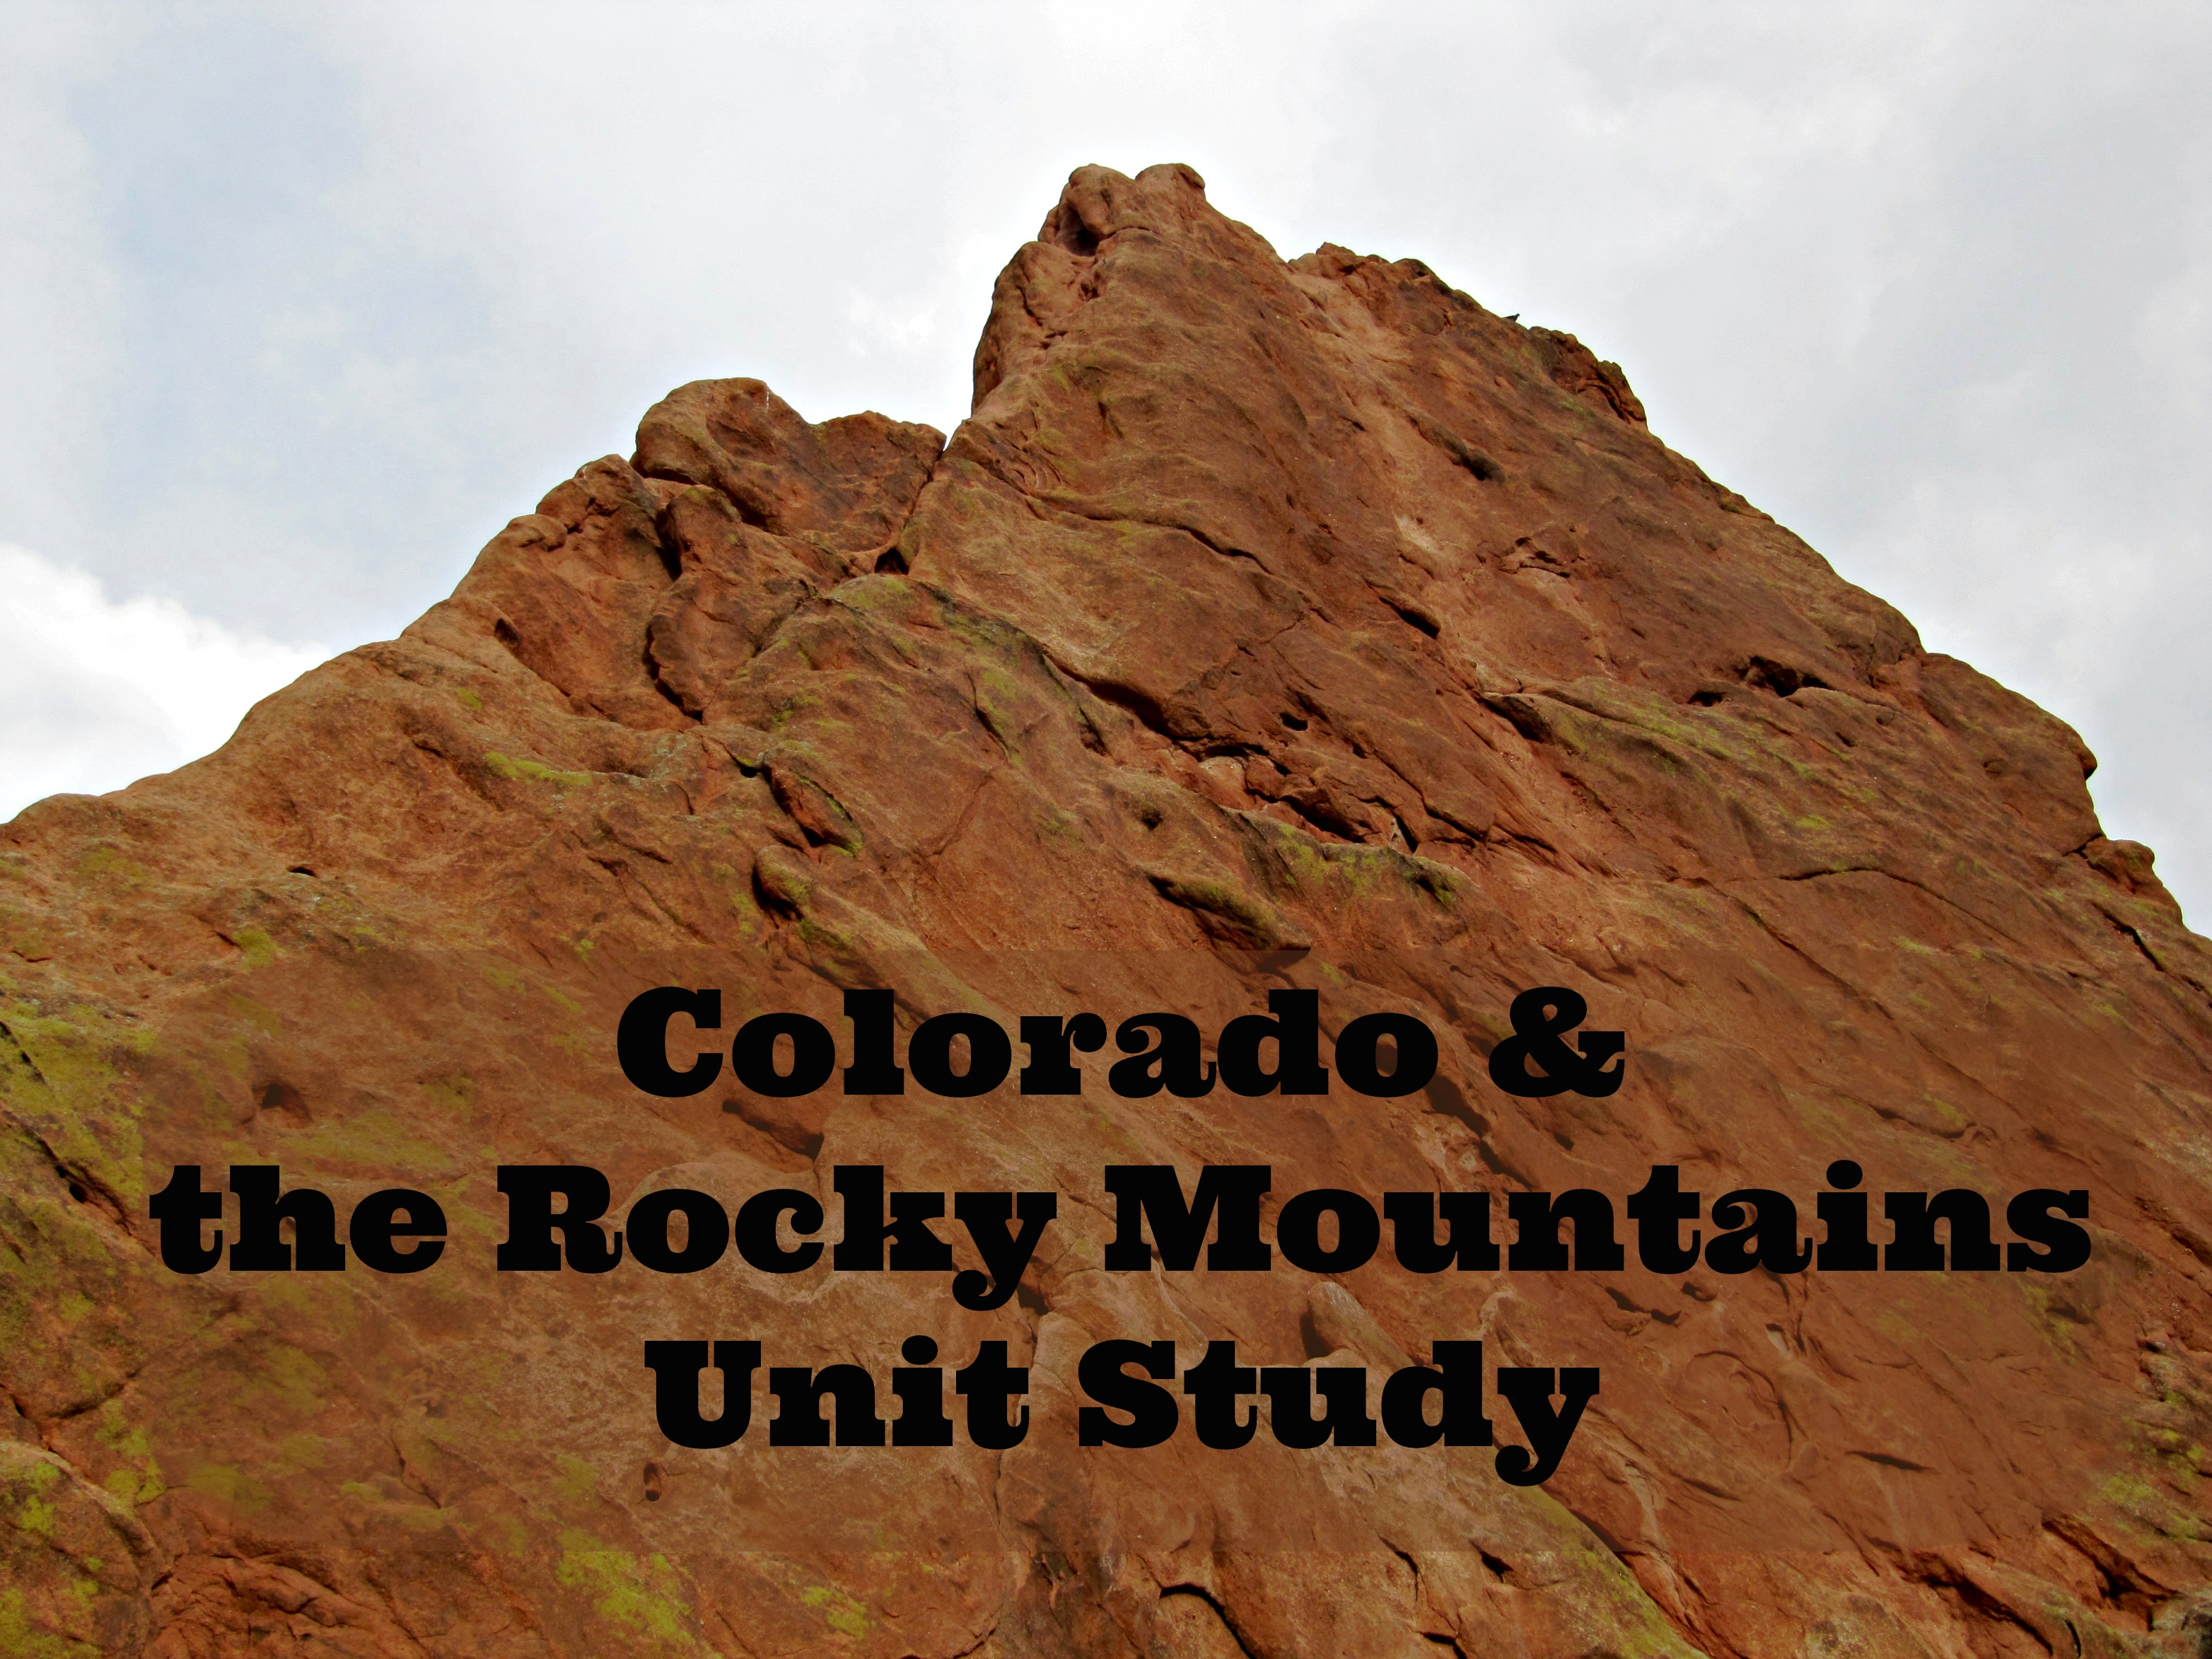 a research on mountains Introverts prefer mountains date: february 27, 2015 source: society for personality and social psychology summary: in a series of three studies, researchers tested whether there is a link between personality and an aspect of physical ecology: flat terrain versus mountainous terrain.